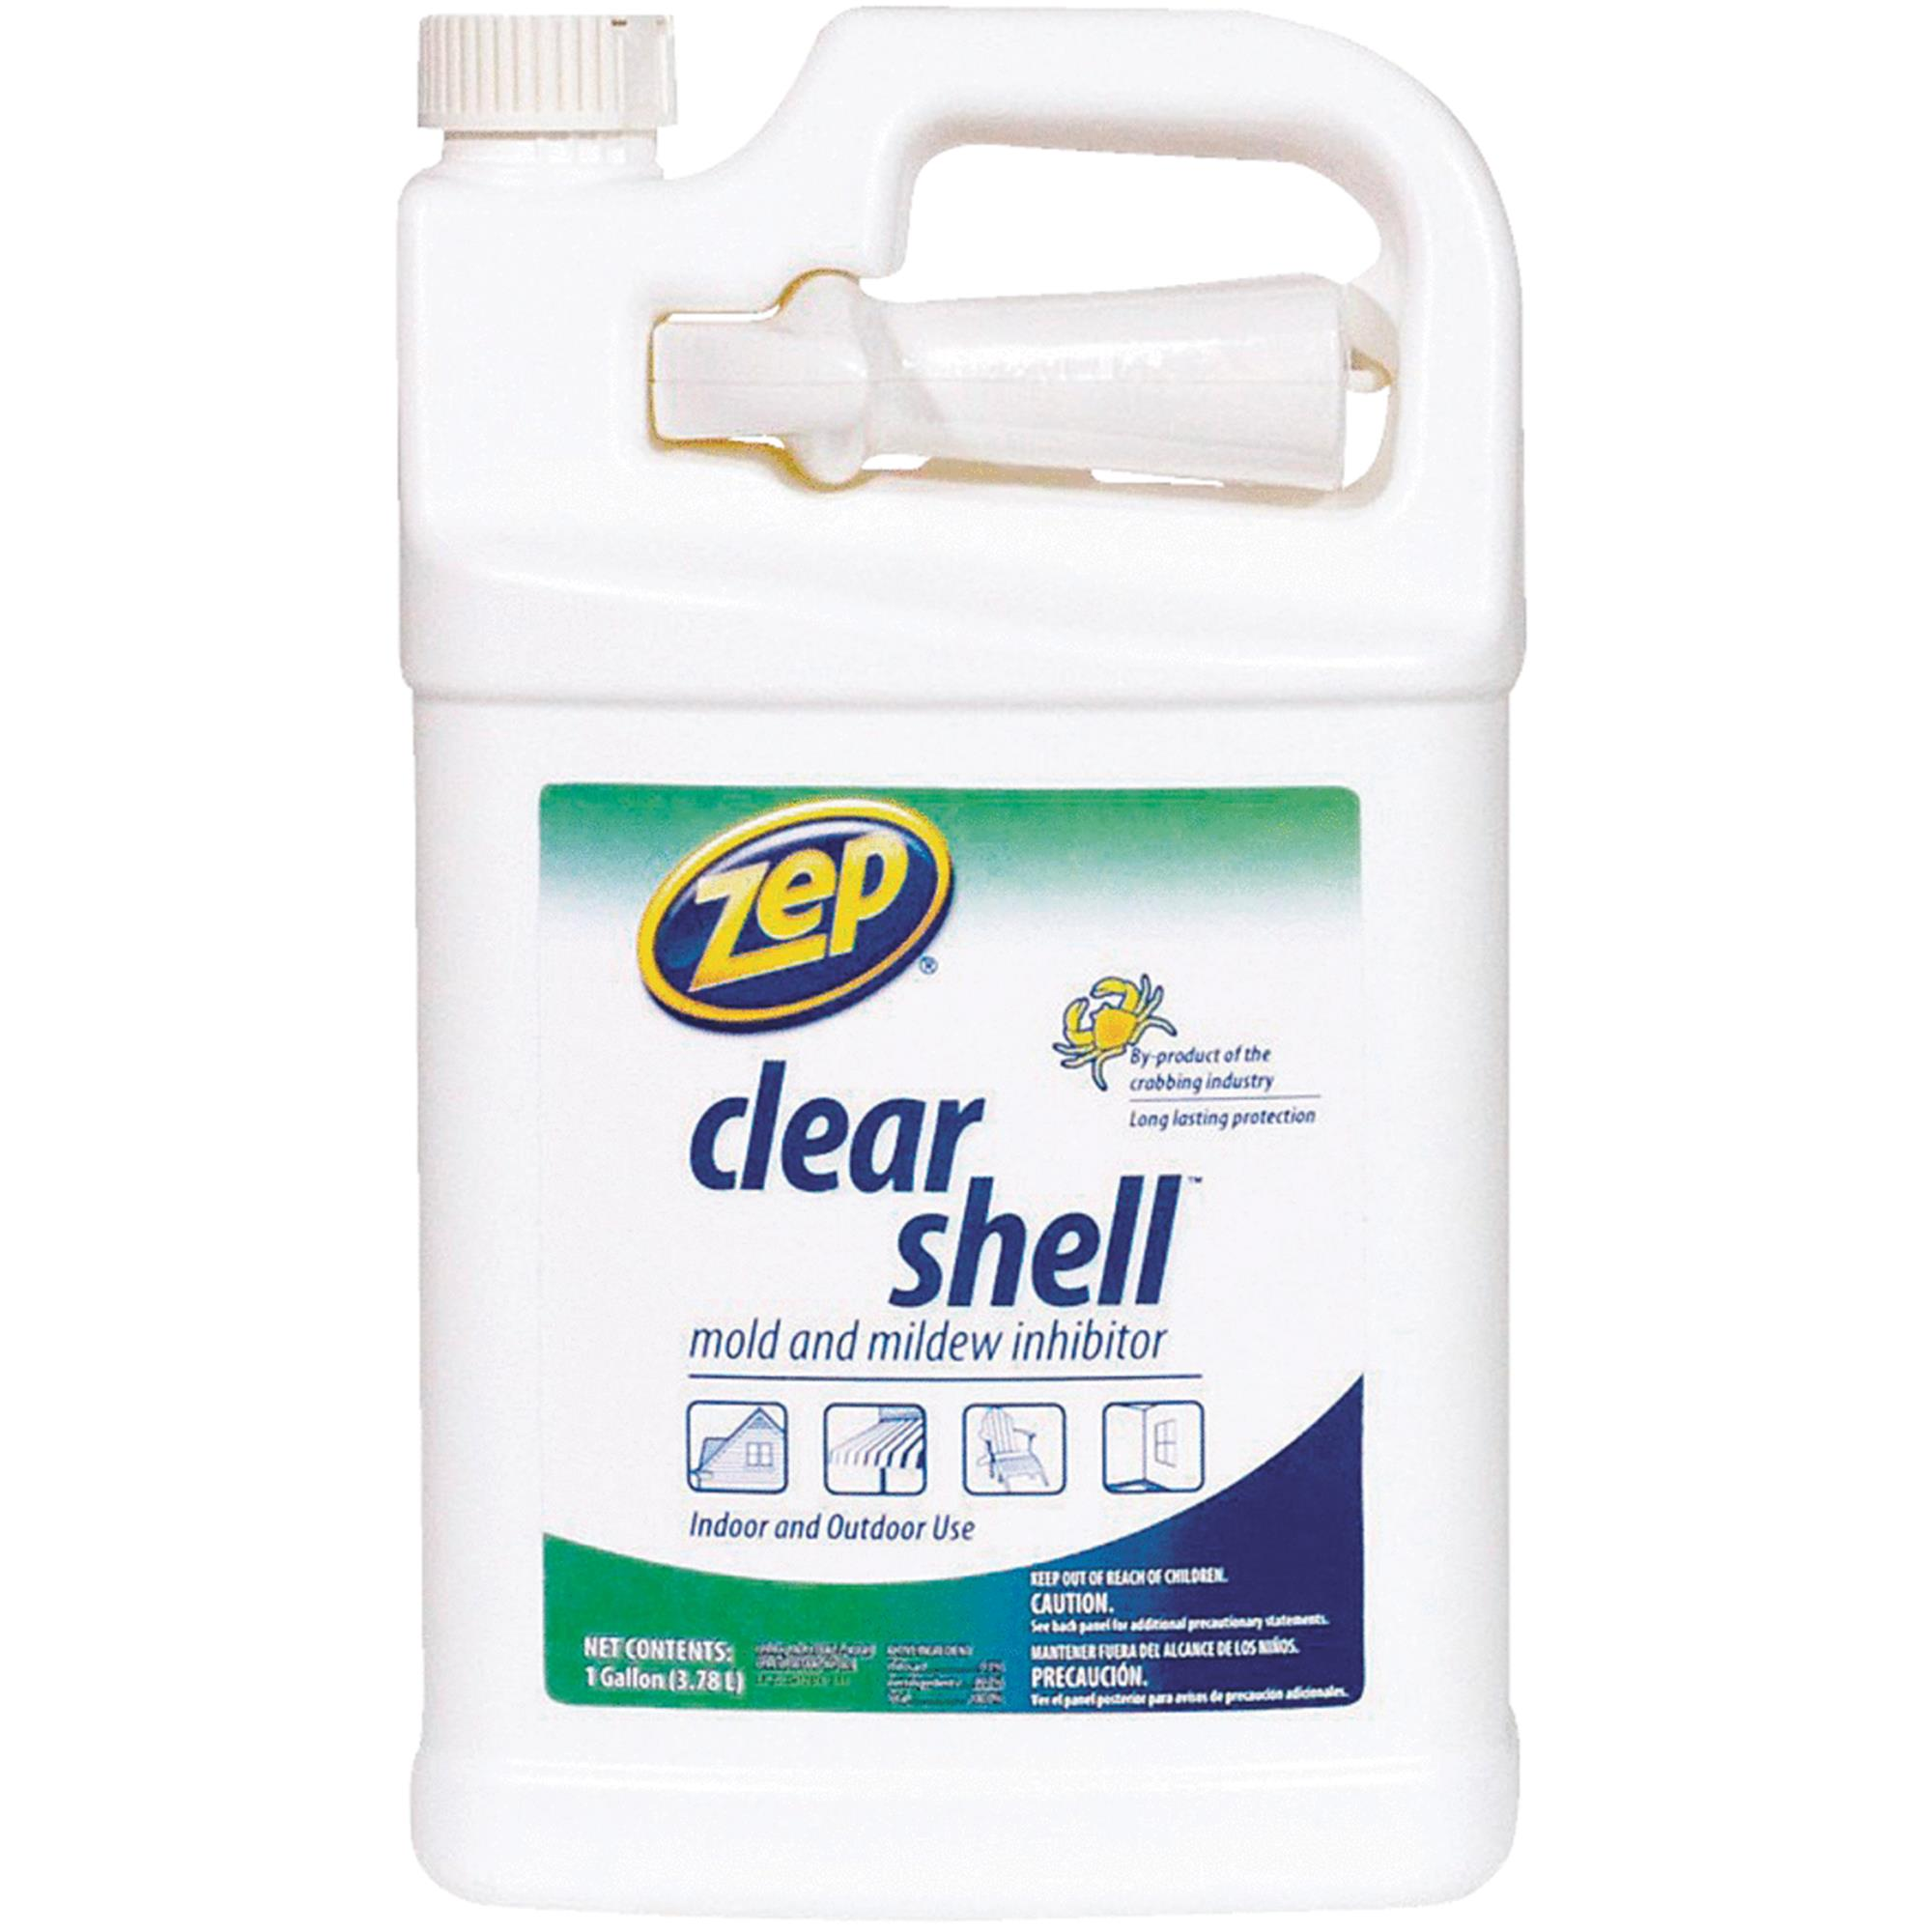 Zep Commercial Clear Shell Mold and Mildew Inhibitor, 128 oz